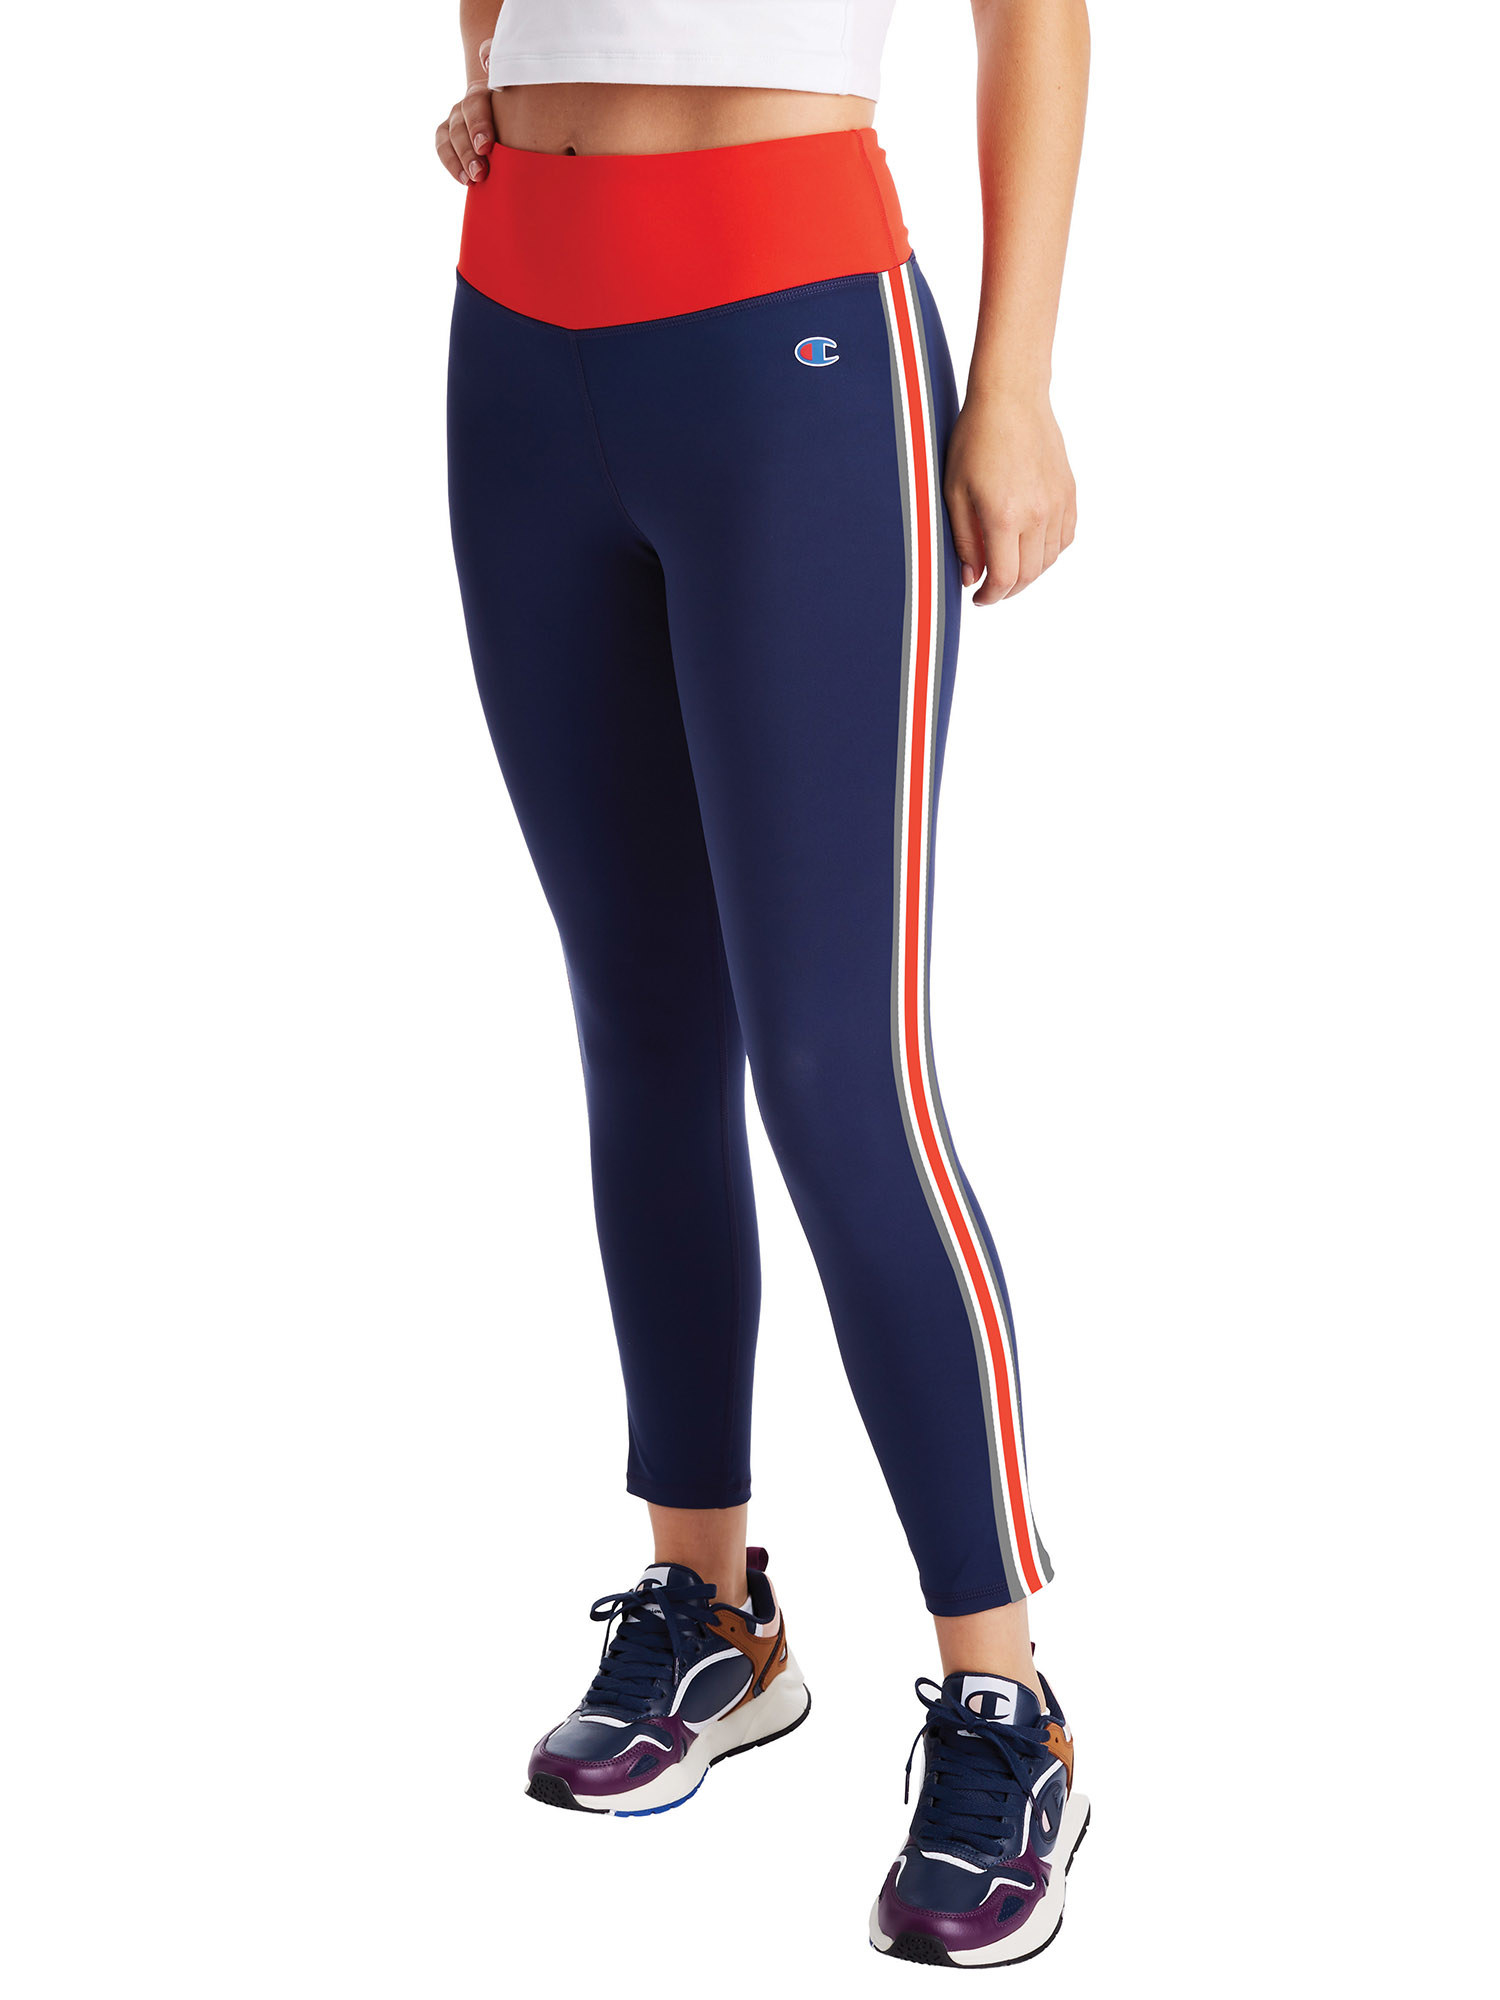 model wearing red and navy blue leggings